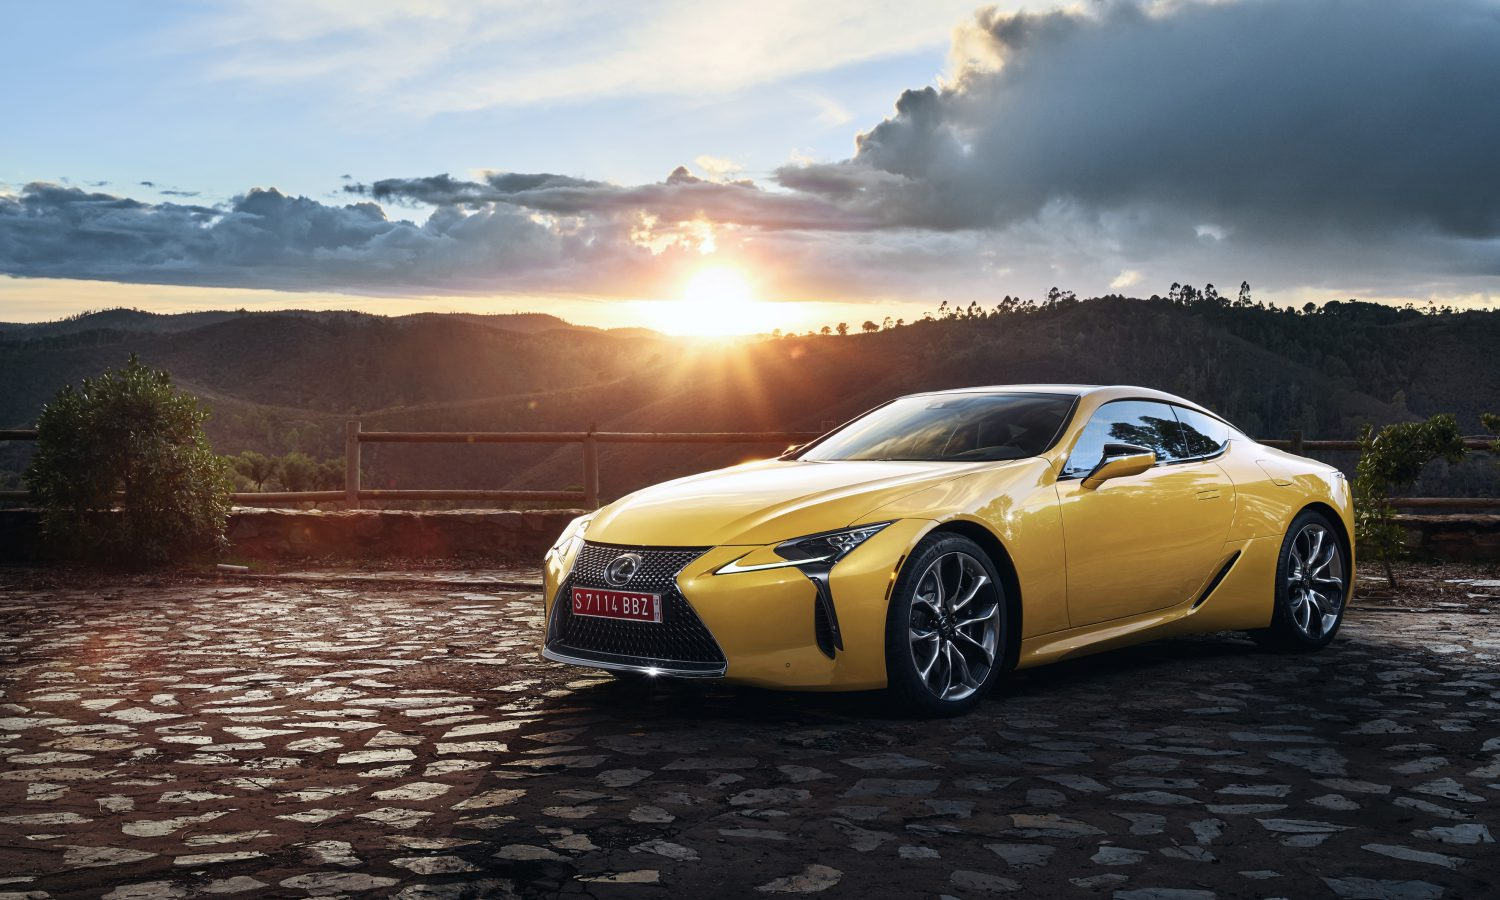 Lexus Announces Pricing for All-New 2018 LC Performance Coupe